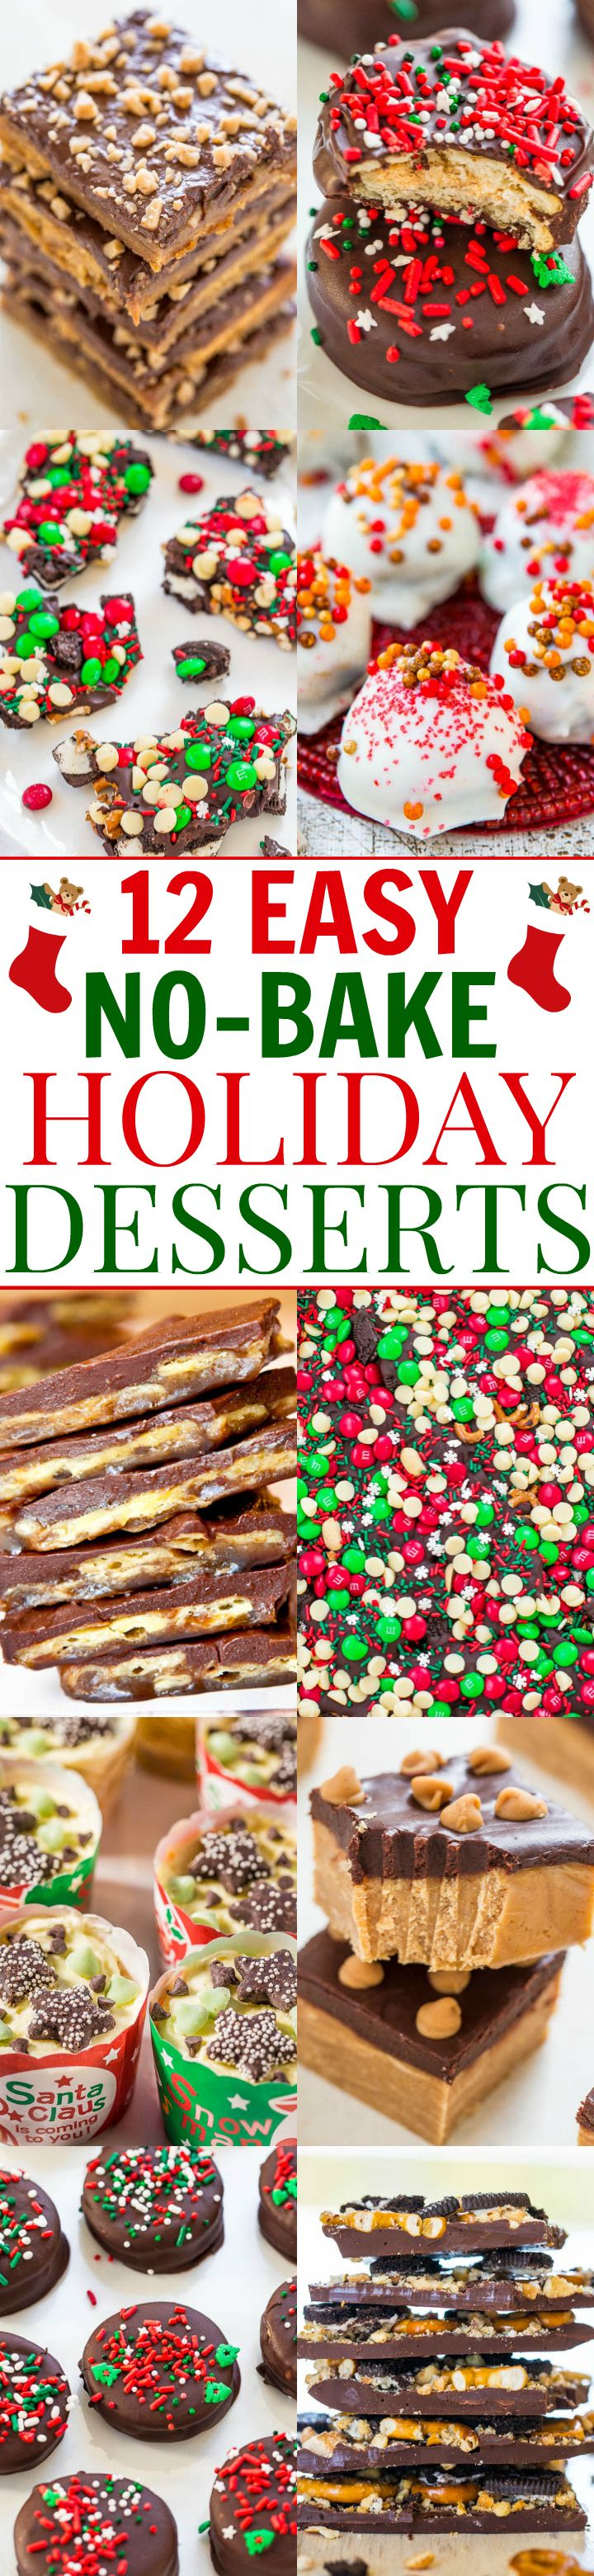 12 Easy No-Bake Holiday Desserts – No time to bake? Here are 12 FAST and EASY no-bake recipes! Whether you want chocolate, peanut butter, cheesecake, bark, or truffles, these recipes have you covered!